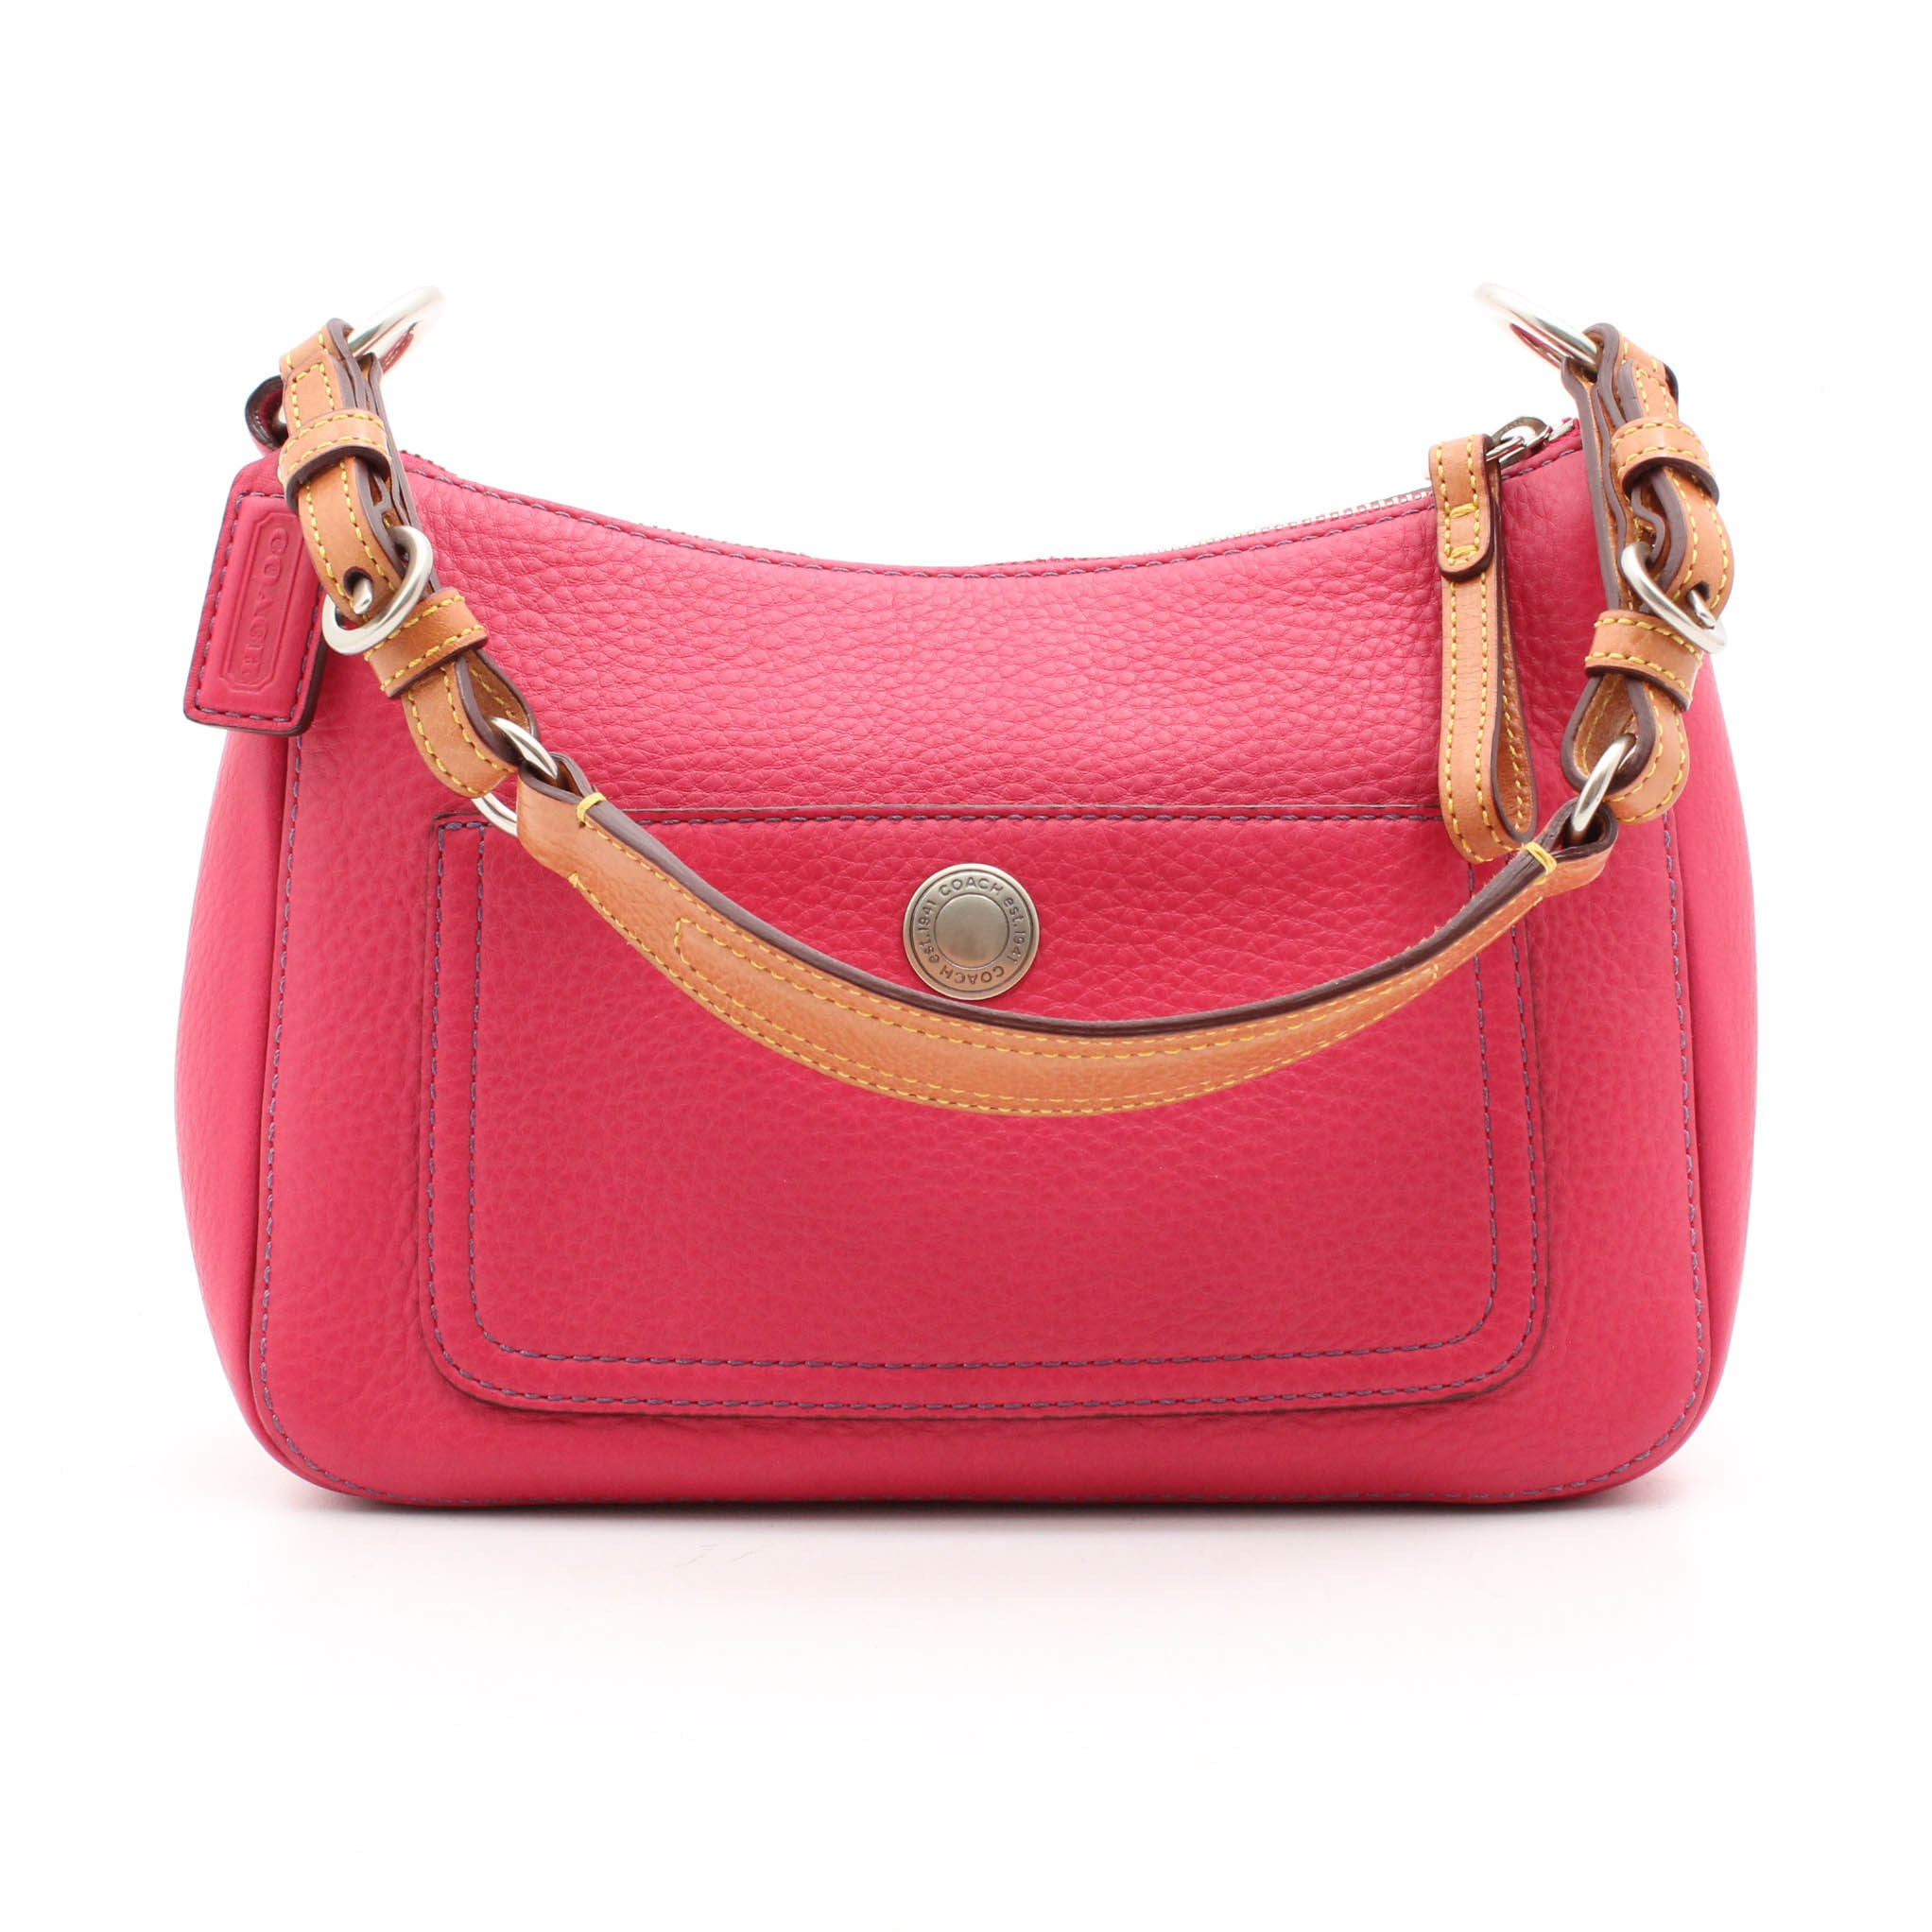 Coach Pink Pebbled and Tan Leather Shoulder Bag